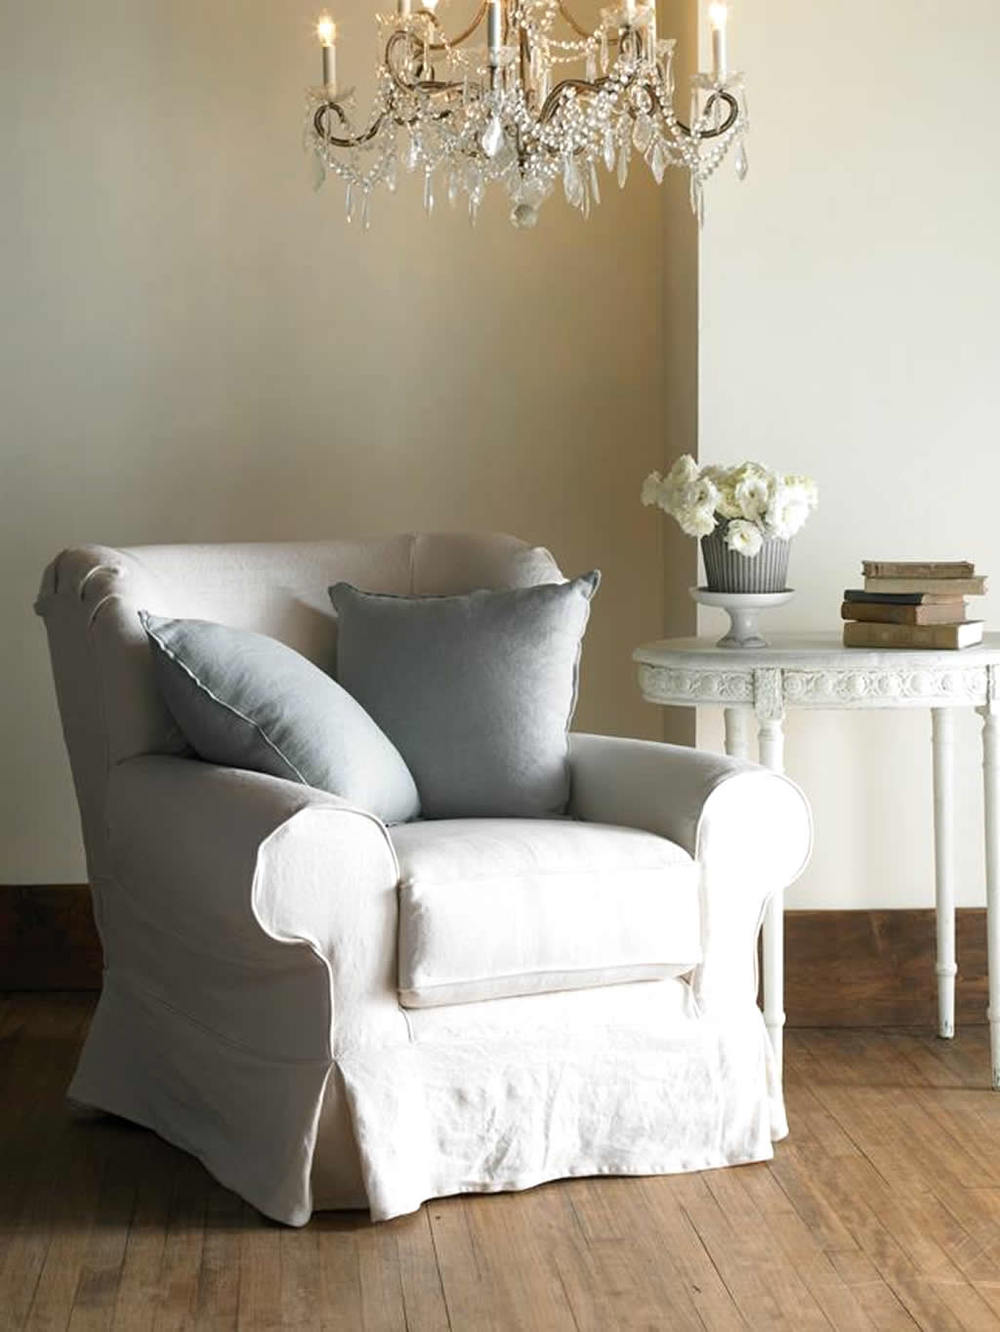 Shabby-Chic-Northampton-Chair-Seating-Furrniture-Design-by-Rachel-Ashwell.jpg